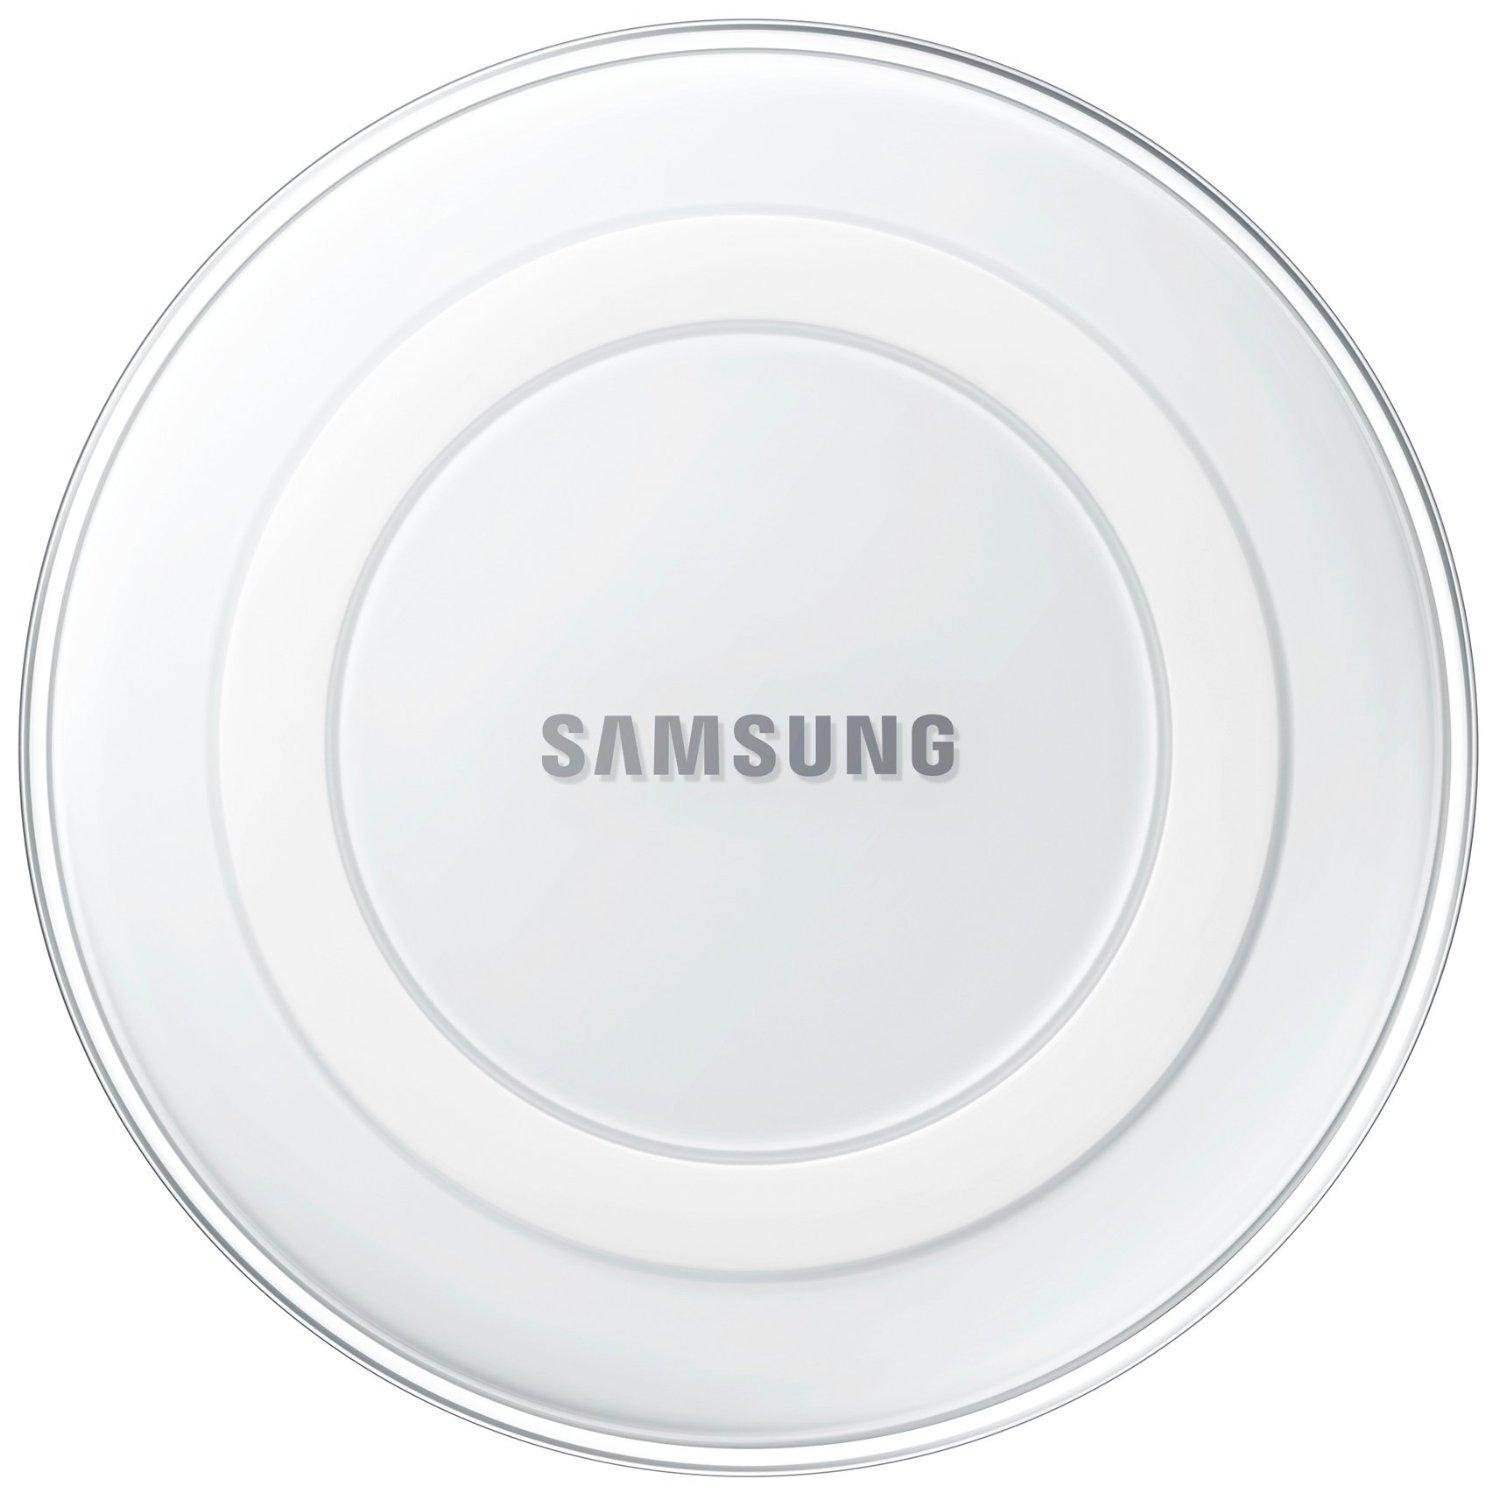 Samsung EP-PG920IWUGUS Qi Certified Wireless Charging Pad with 2A Wall Charger -Supports wireless charging on Qi compatible smartphones including the Galaxy S8, S8+, Note 8, Apple iPhone 8, and 8 Plus (US Version) - White Pearl